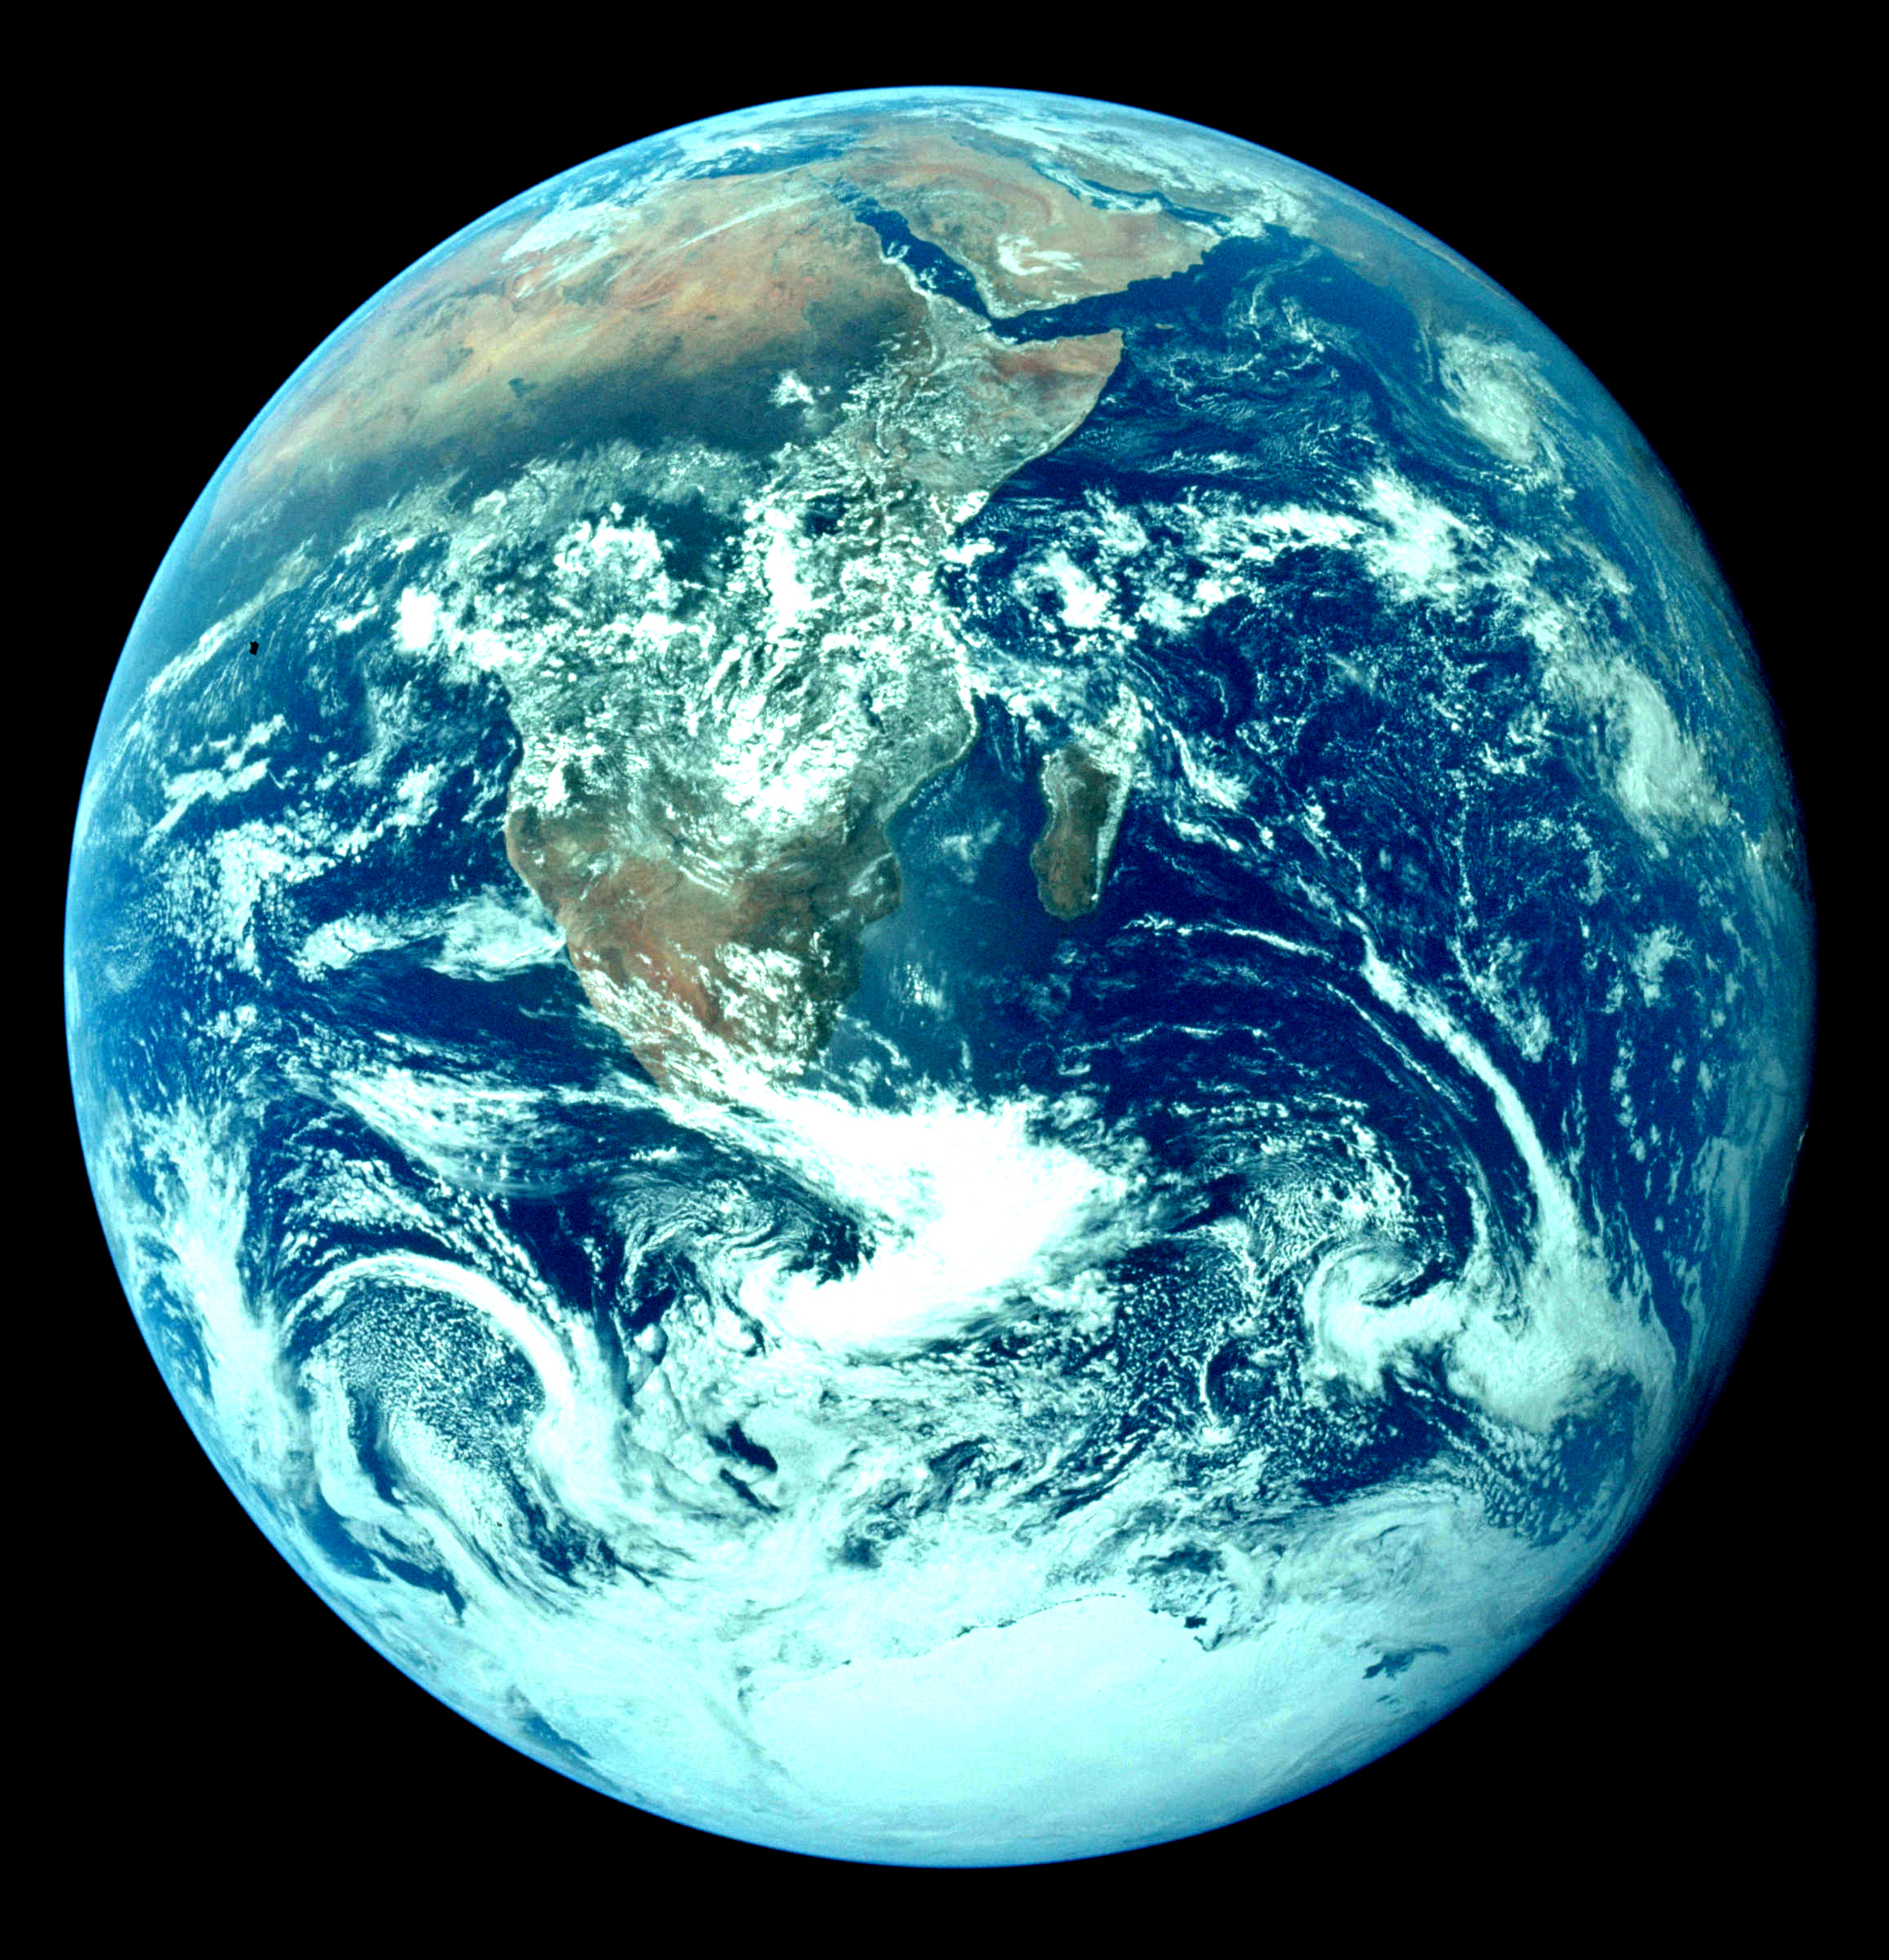 https://i1.wp.com/clog.dailycal.org/wp-content/uploads/2008/04/the_blue_marble.jpg